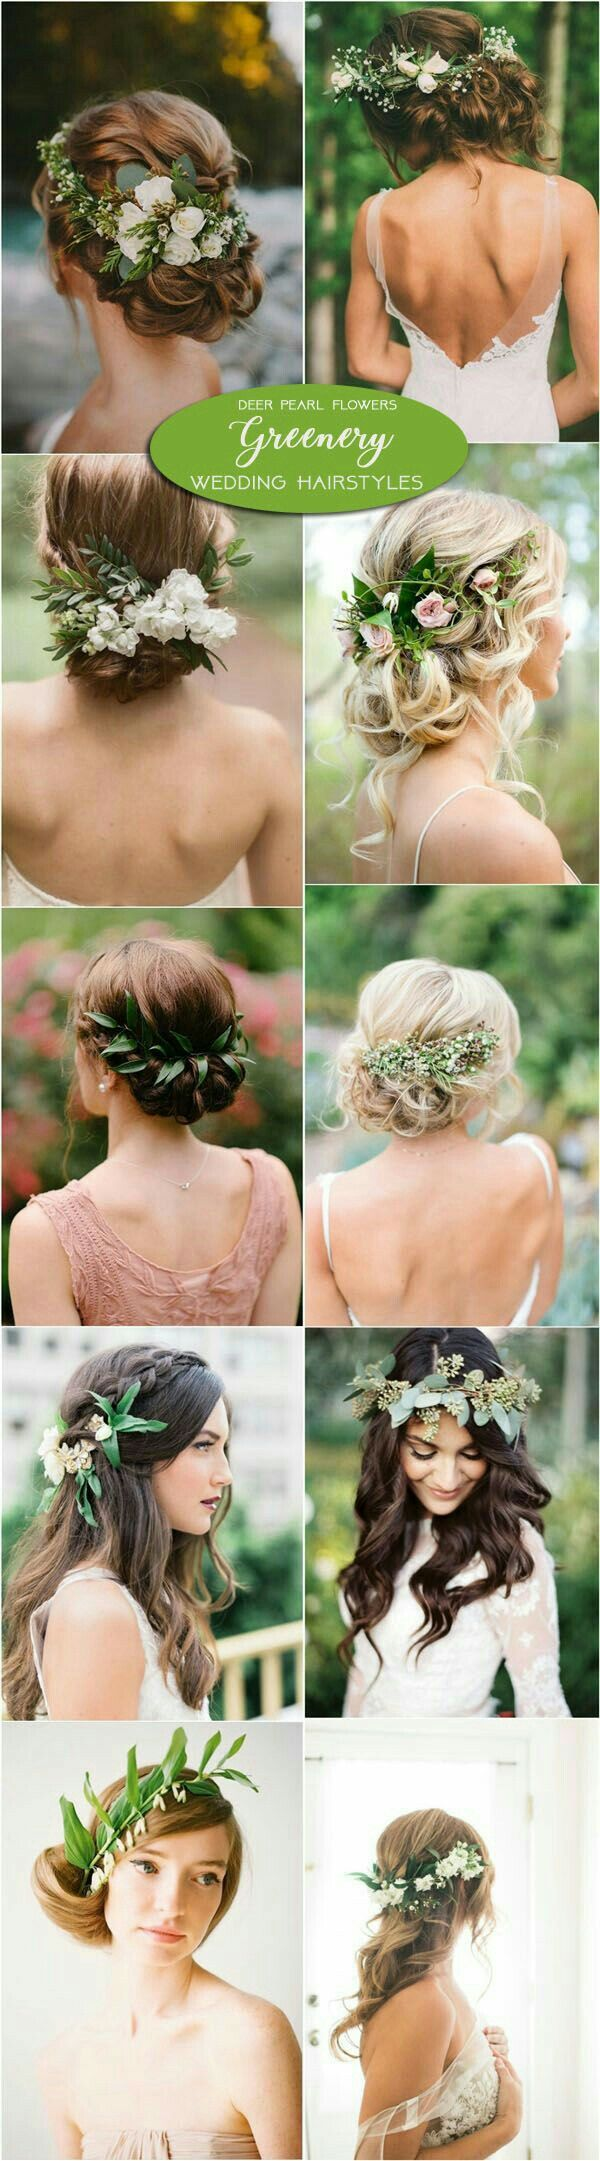 ❀Flowers for wedding or bridesmaids  Instag @oktaviawhy pinterest @gain frey